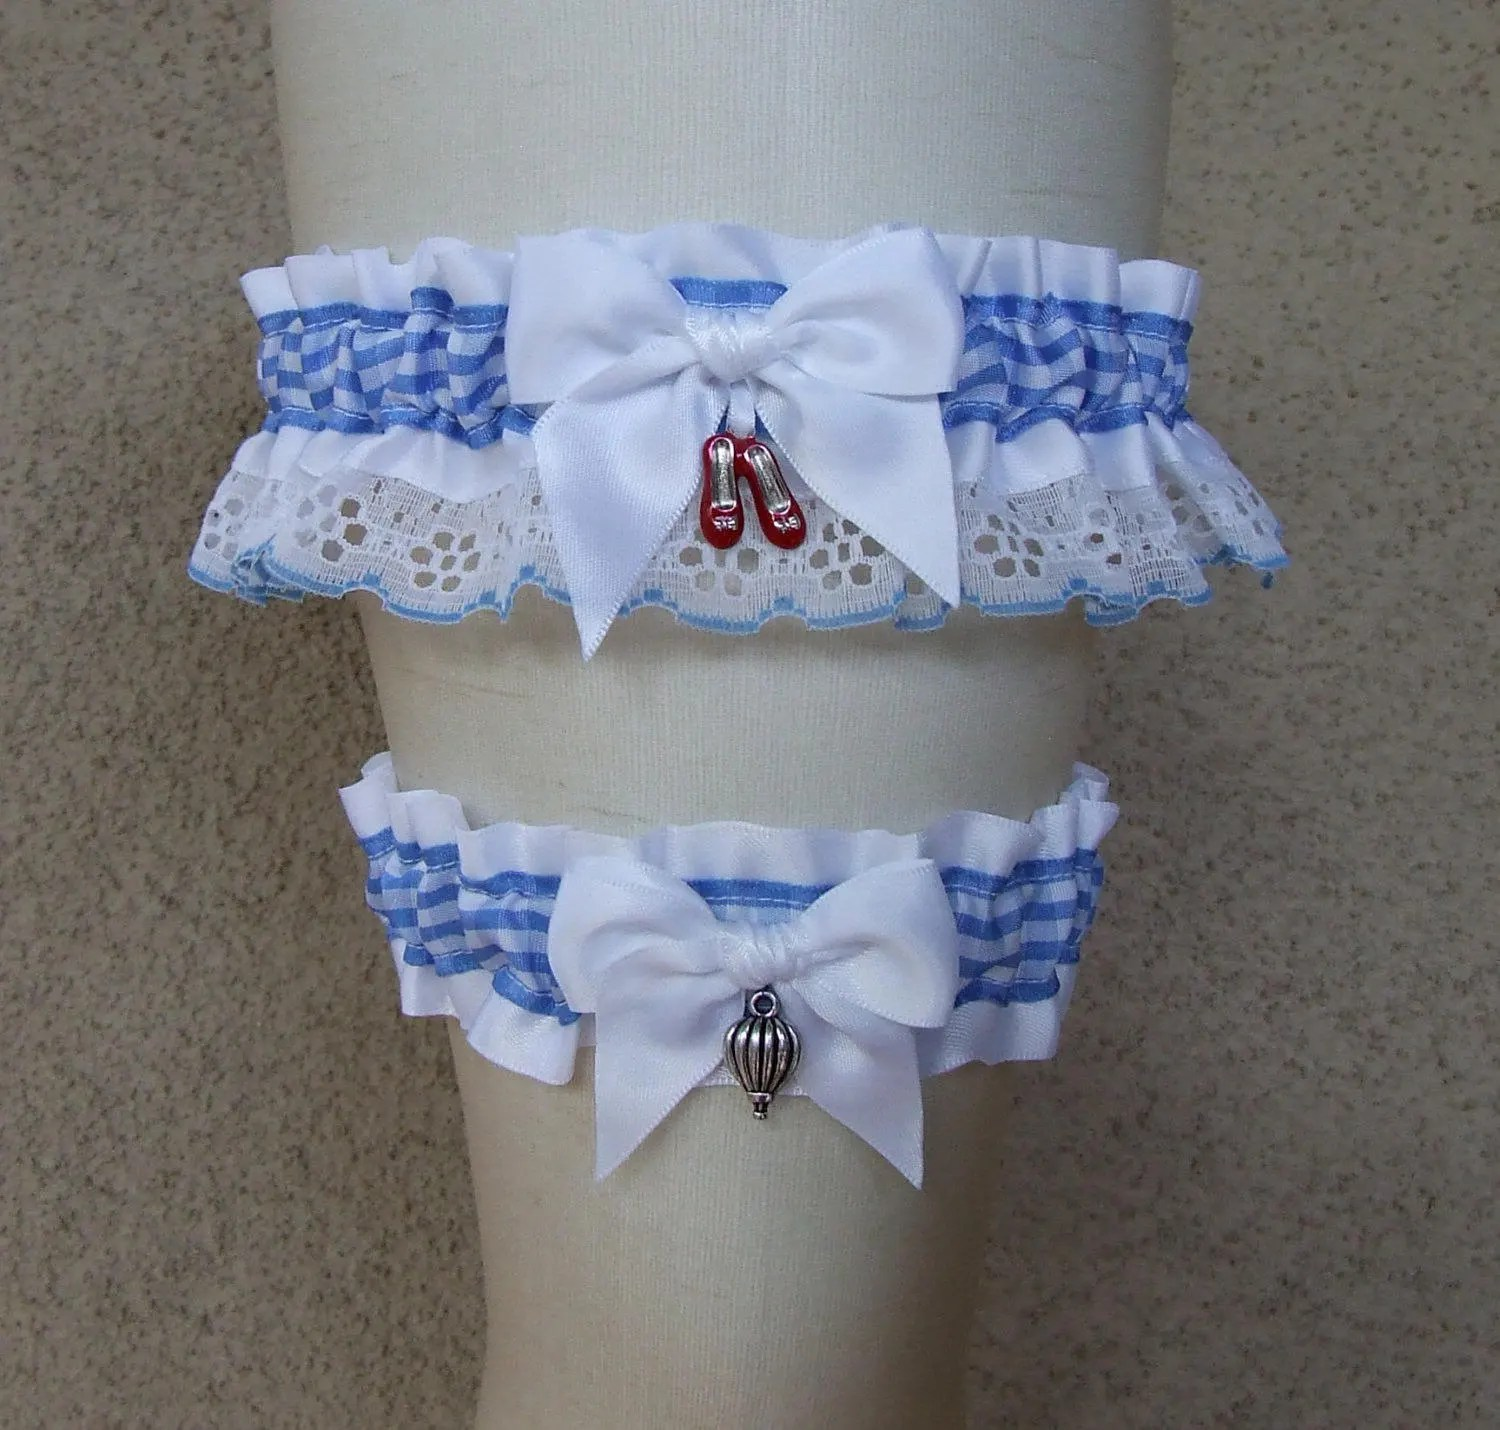 Lionetto Mobili Wizard Of Oz Garter Set Something Blue Gingham Ruby Slippers Dorothy Scarecrow Cowardly Lion Toto Fairy Tale Fairytale Bridal Wedding Prom